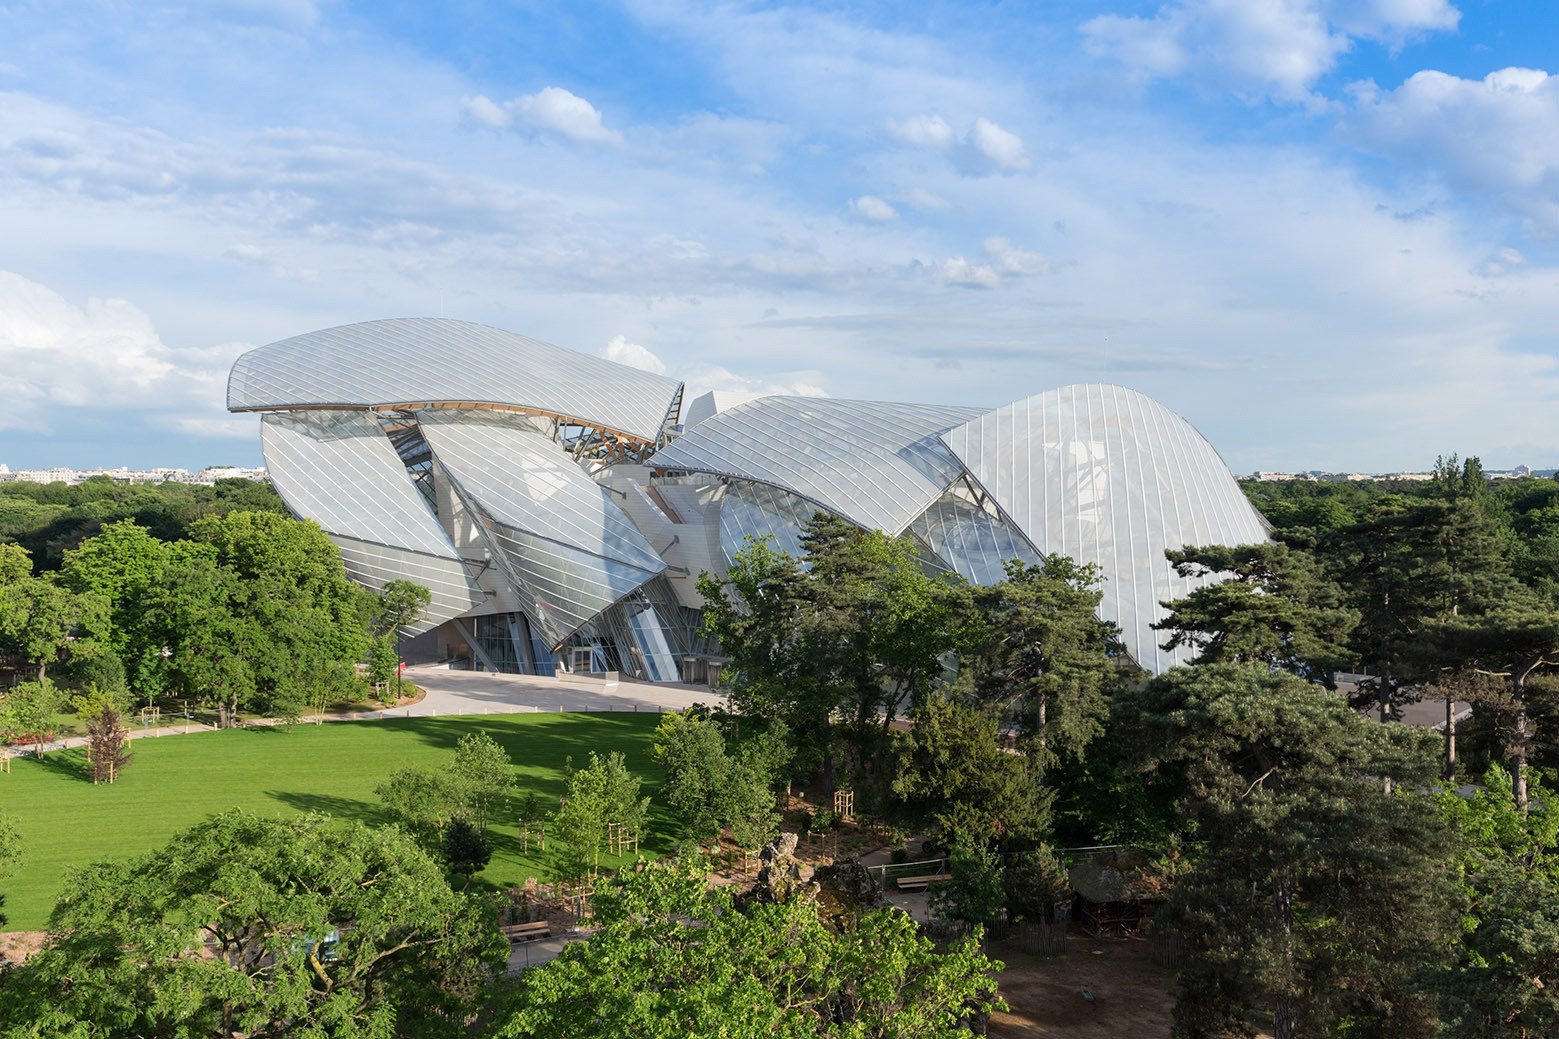 Gehry's Fondation Louis Vuitton in Paris: The Critics Respond, Fondation Louis Vuitton, Paris. Image © Iwan Baan